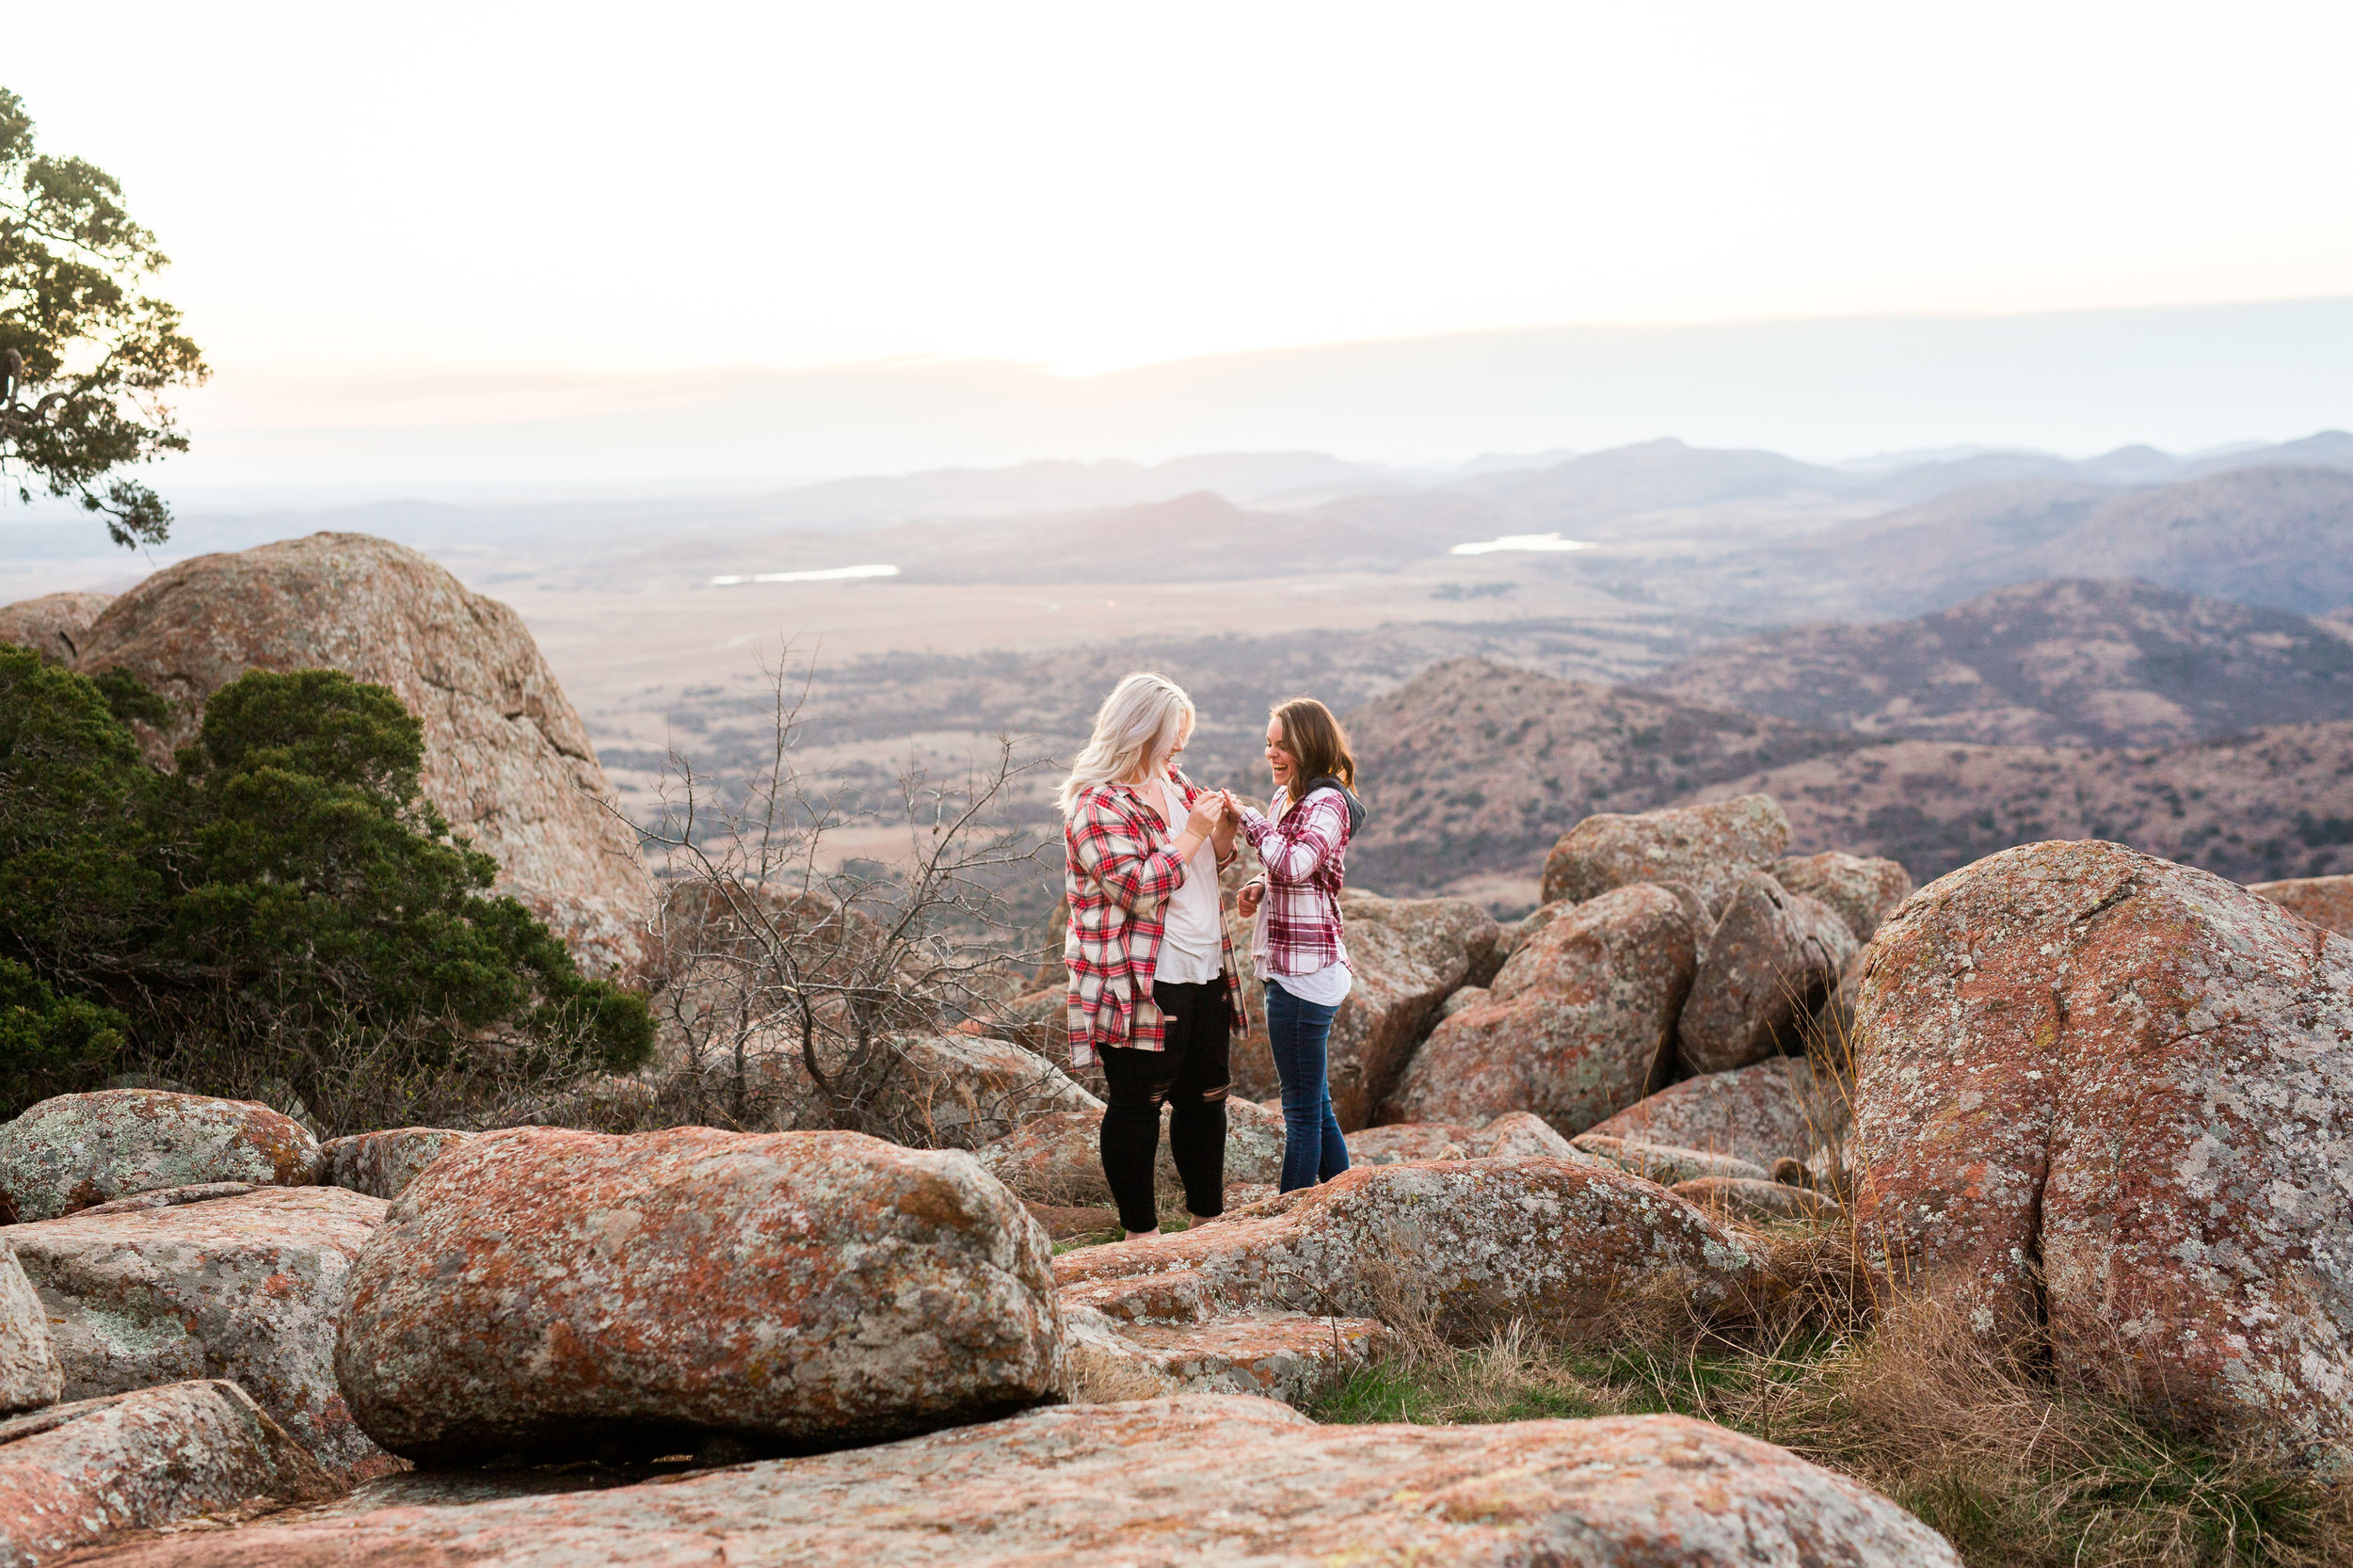 okc wedding photographer, oklahoma city, oklahoma weddings, norman, lgbt friendly, gay proposal, mountain proposal, wichita mountains, mt scott proposal, brides